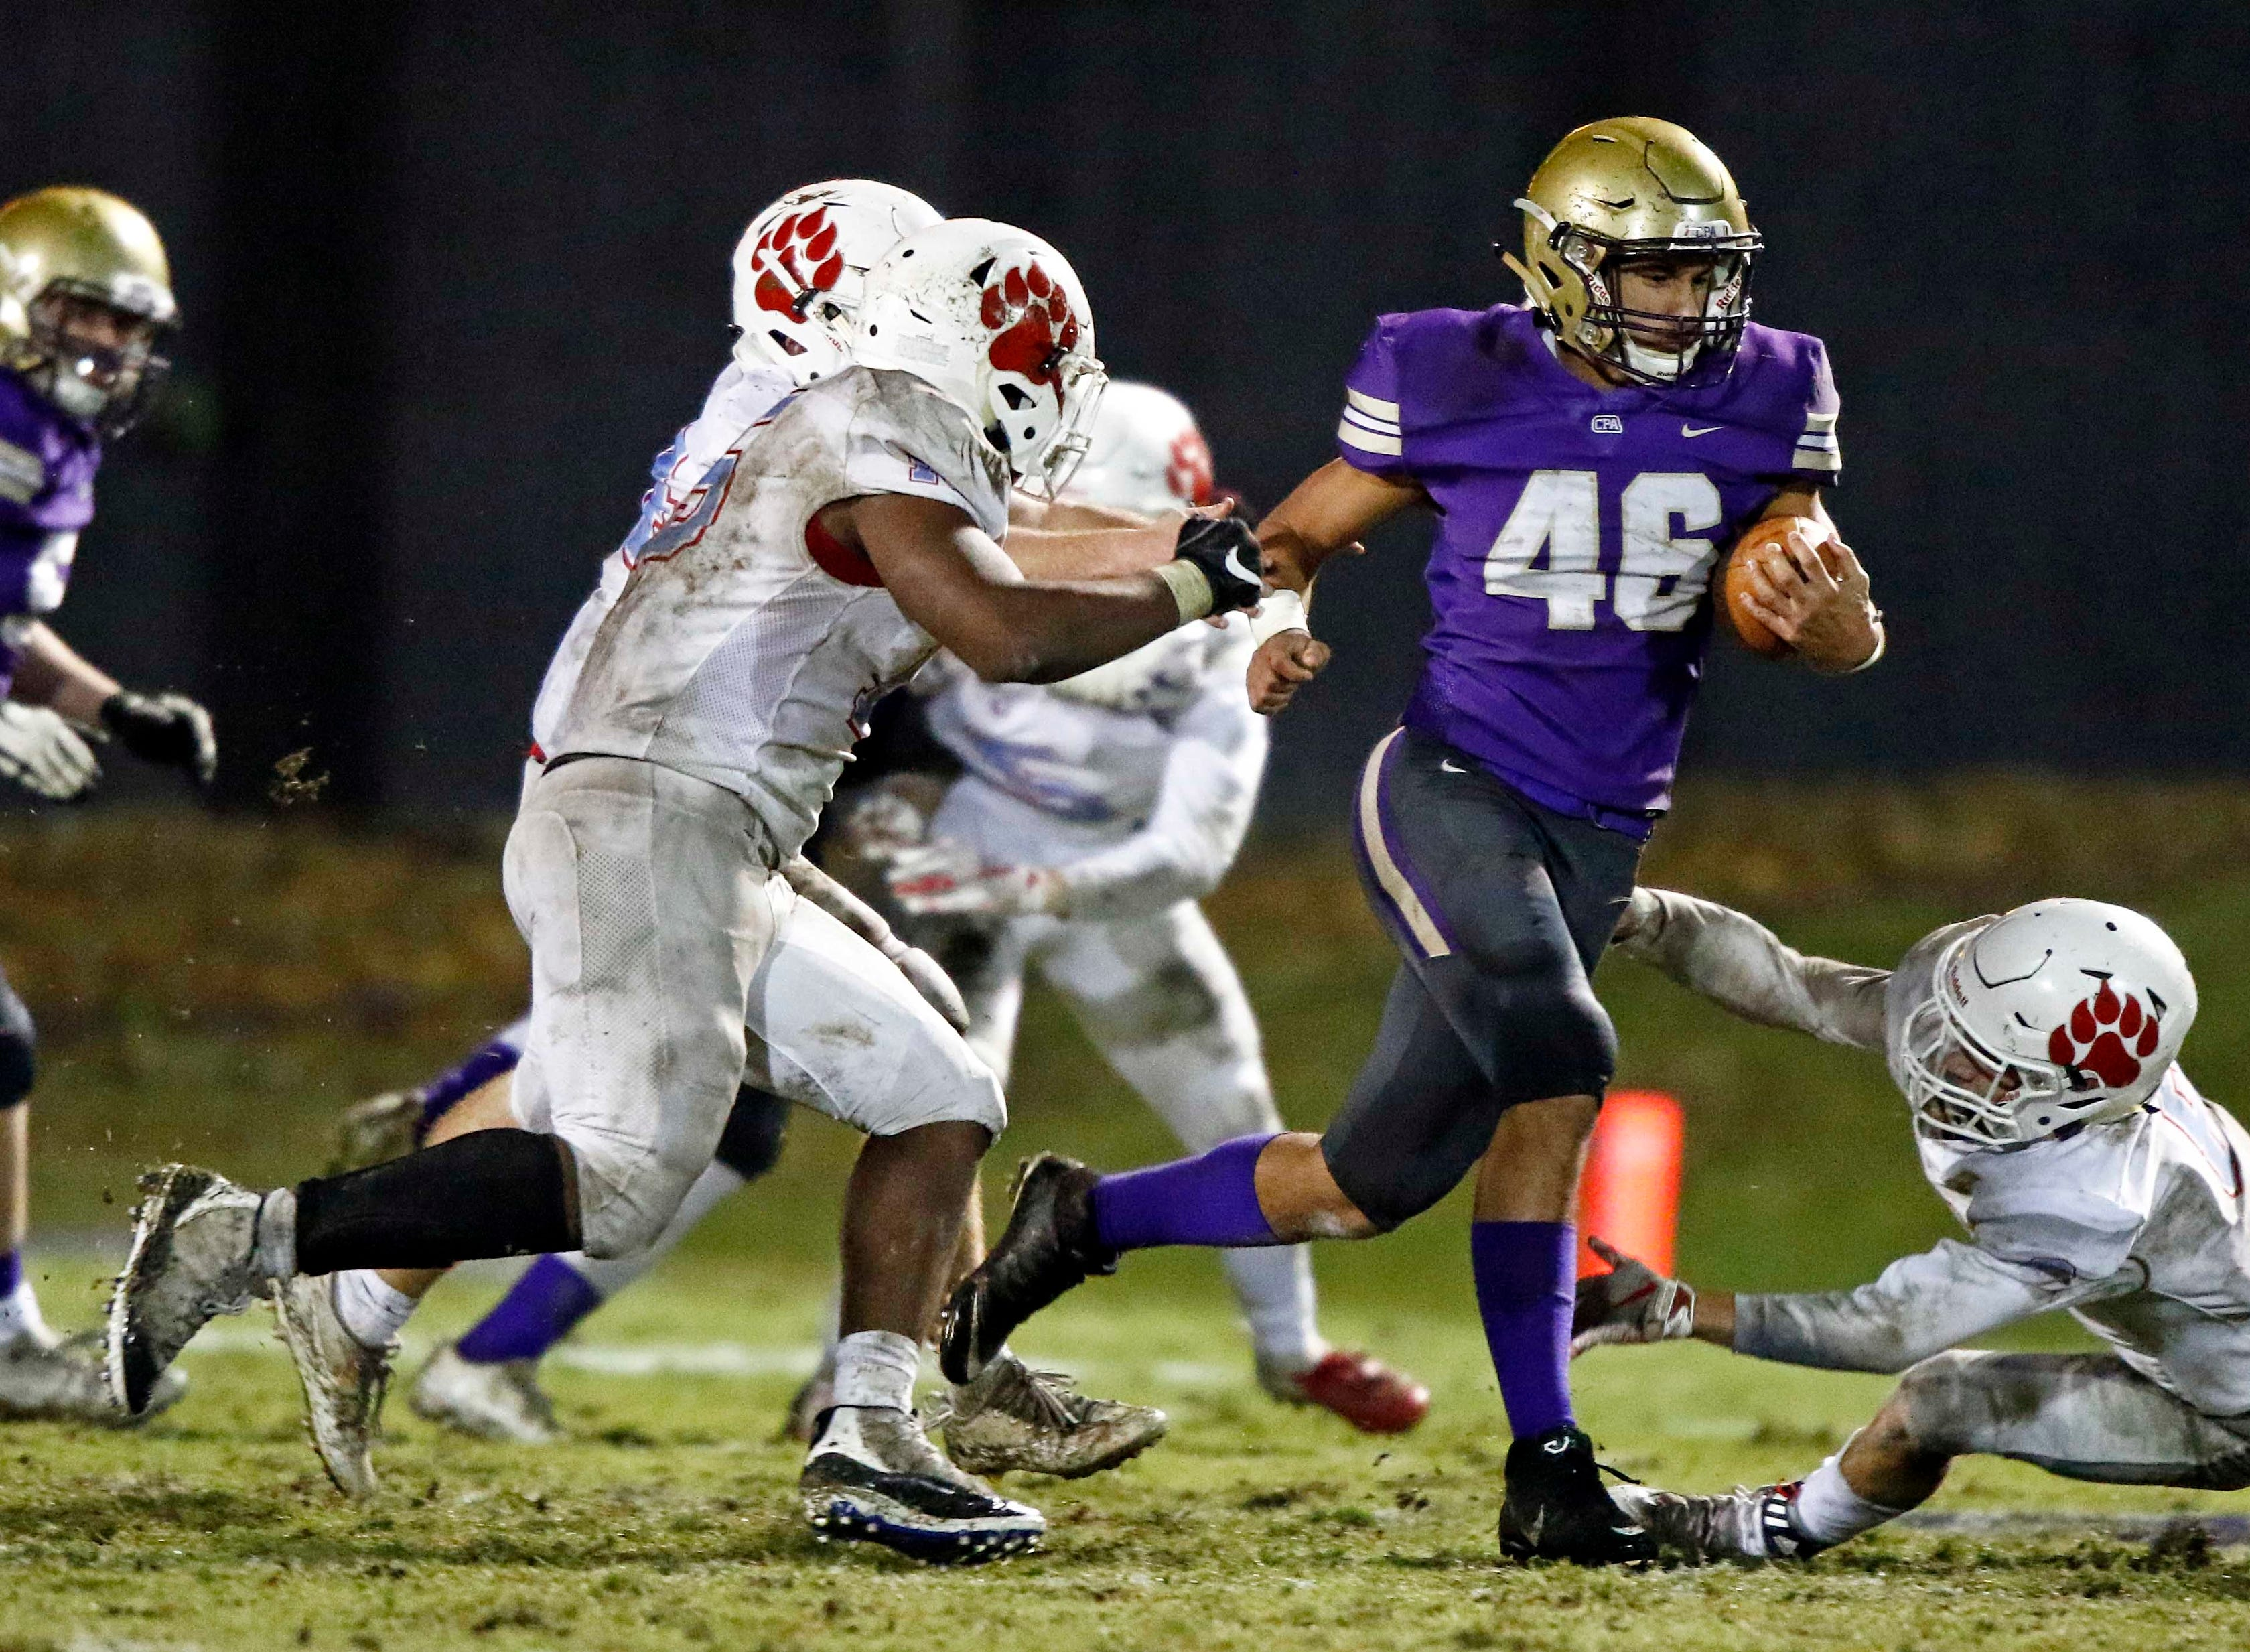 CPA's Ethan Stewart (46) runs for yardages as he's chased by the USJ defense during their game Friday, Nov. 2, 2018, in Nashville, TN.